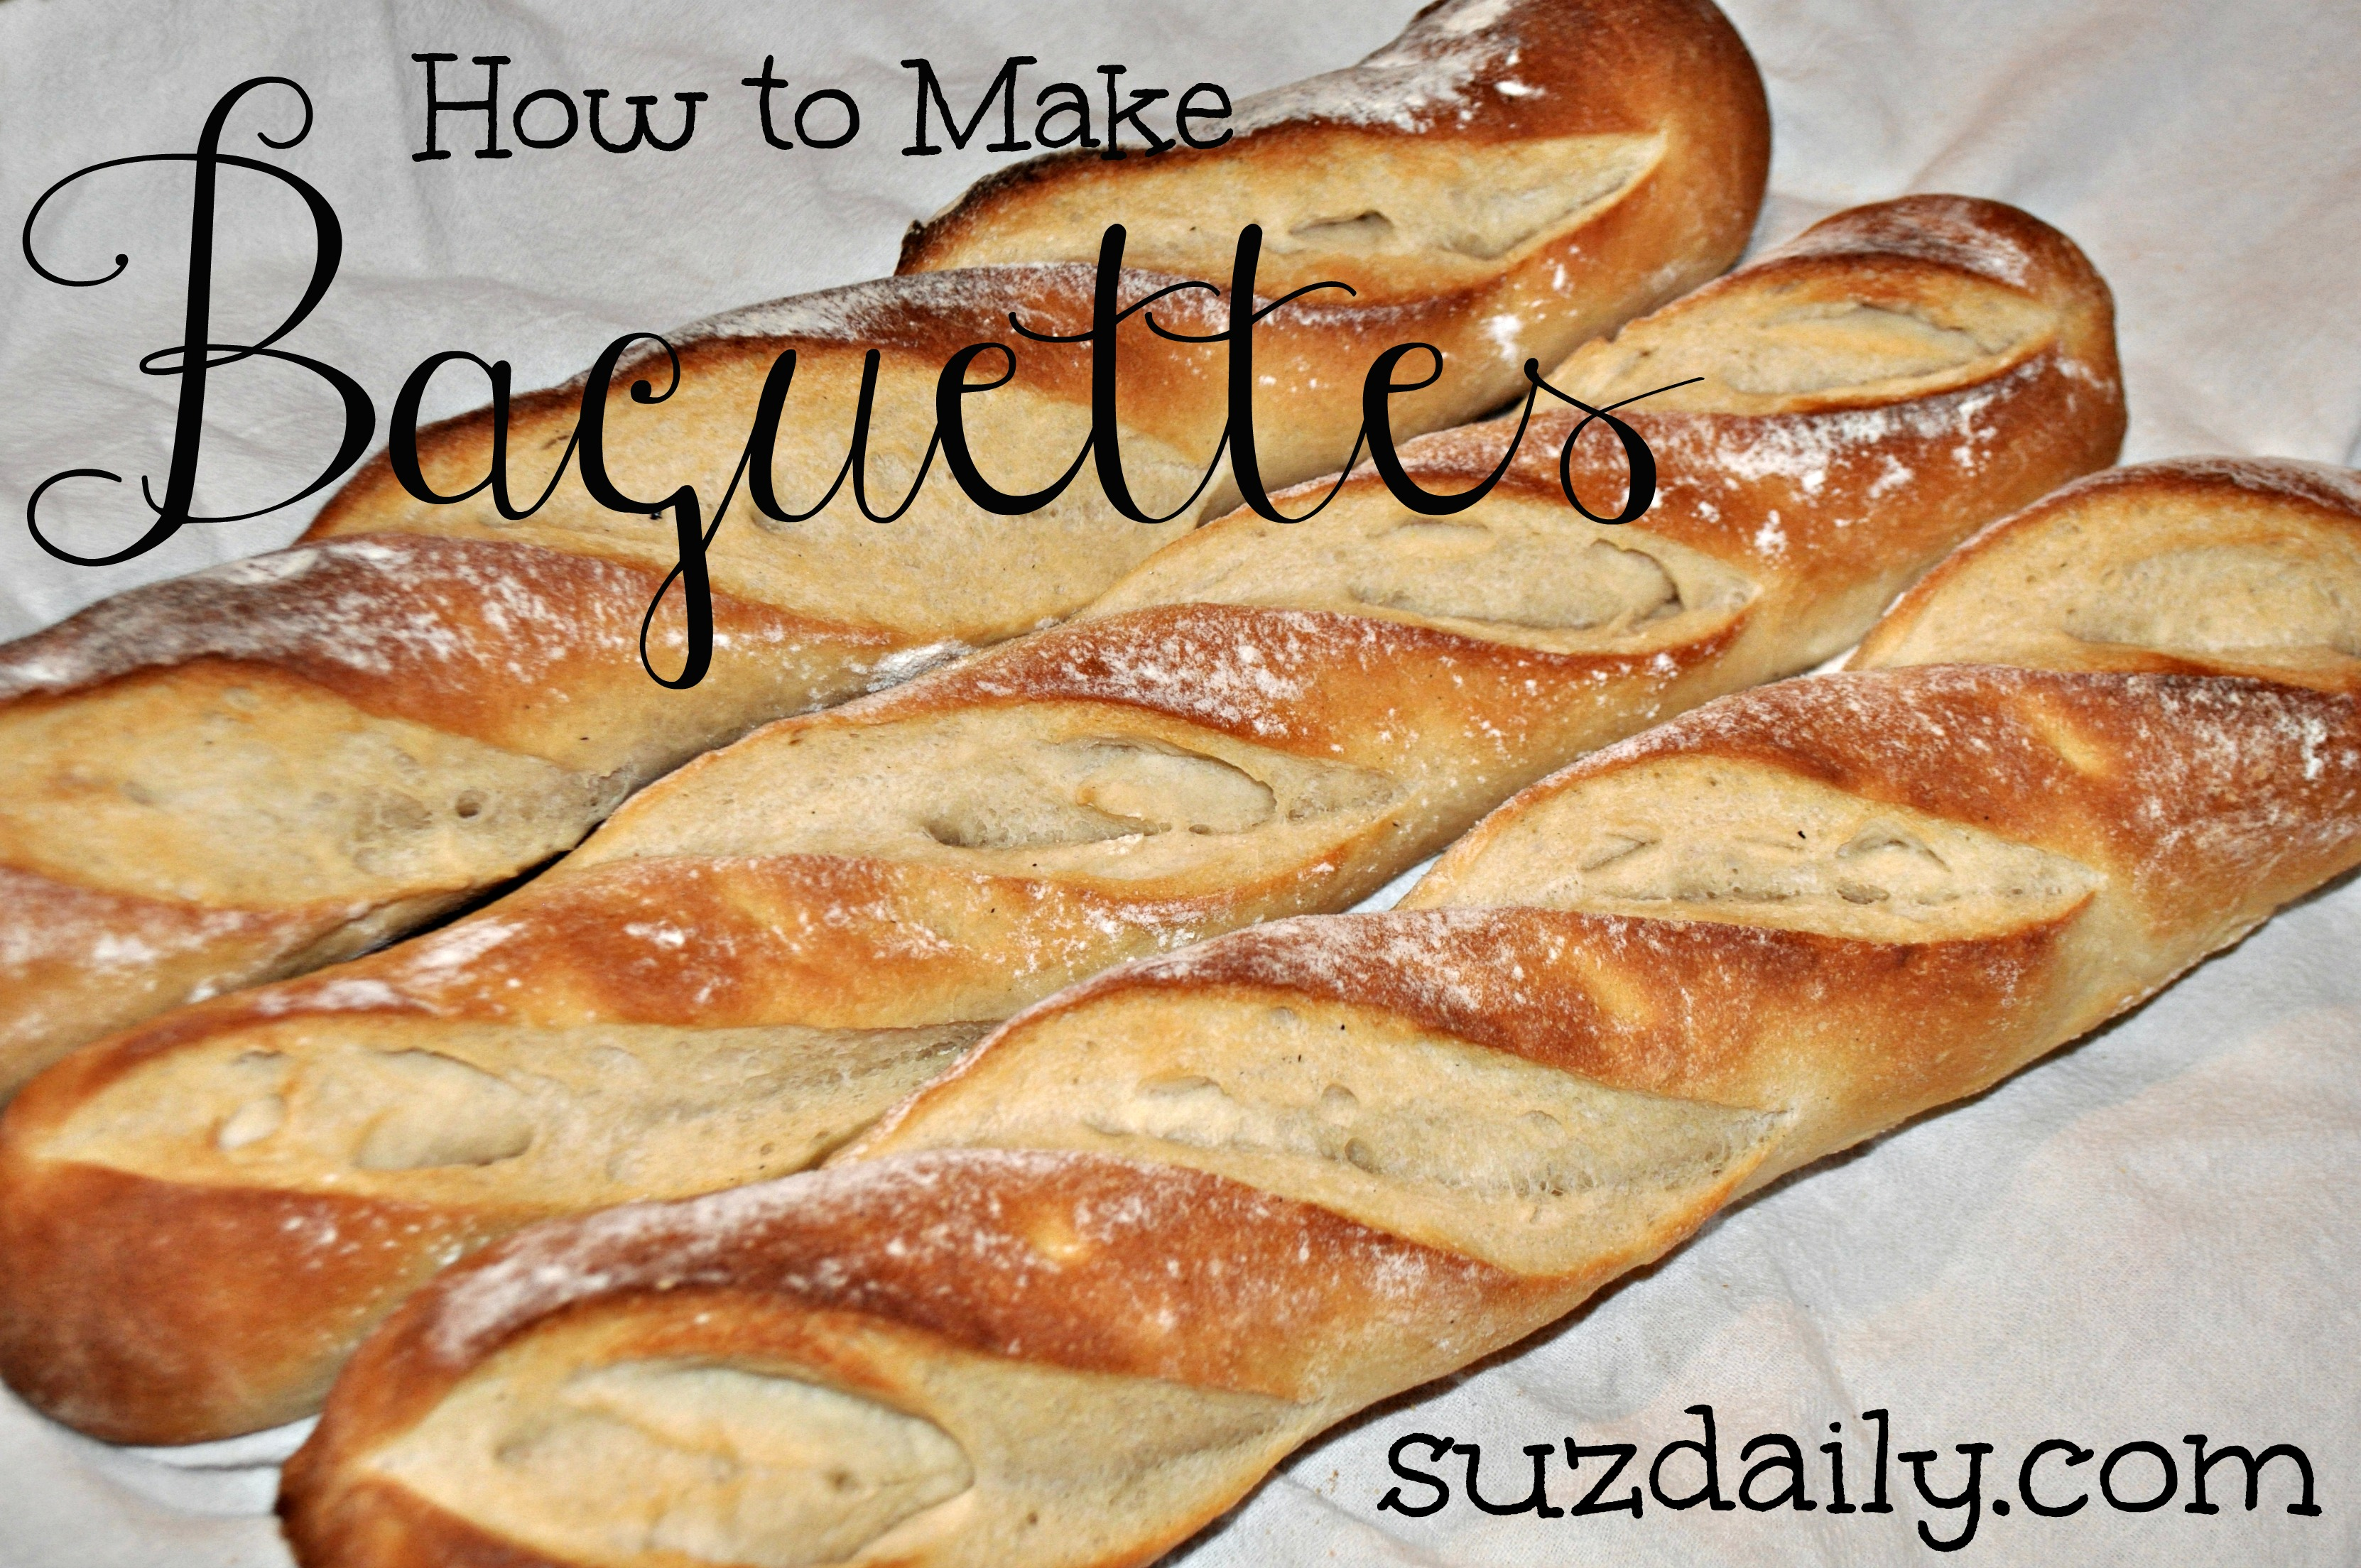 How to Make Baguettes